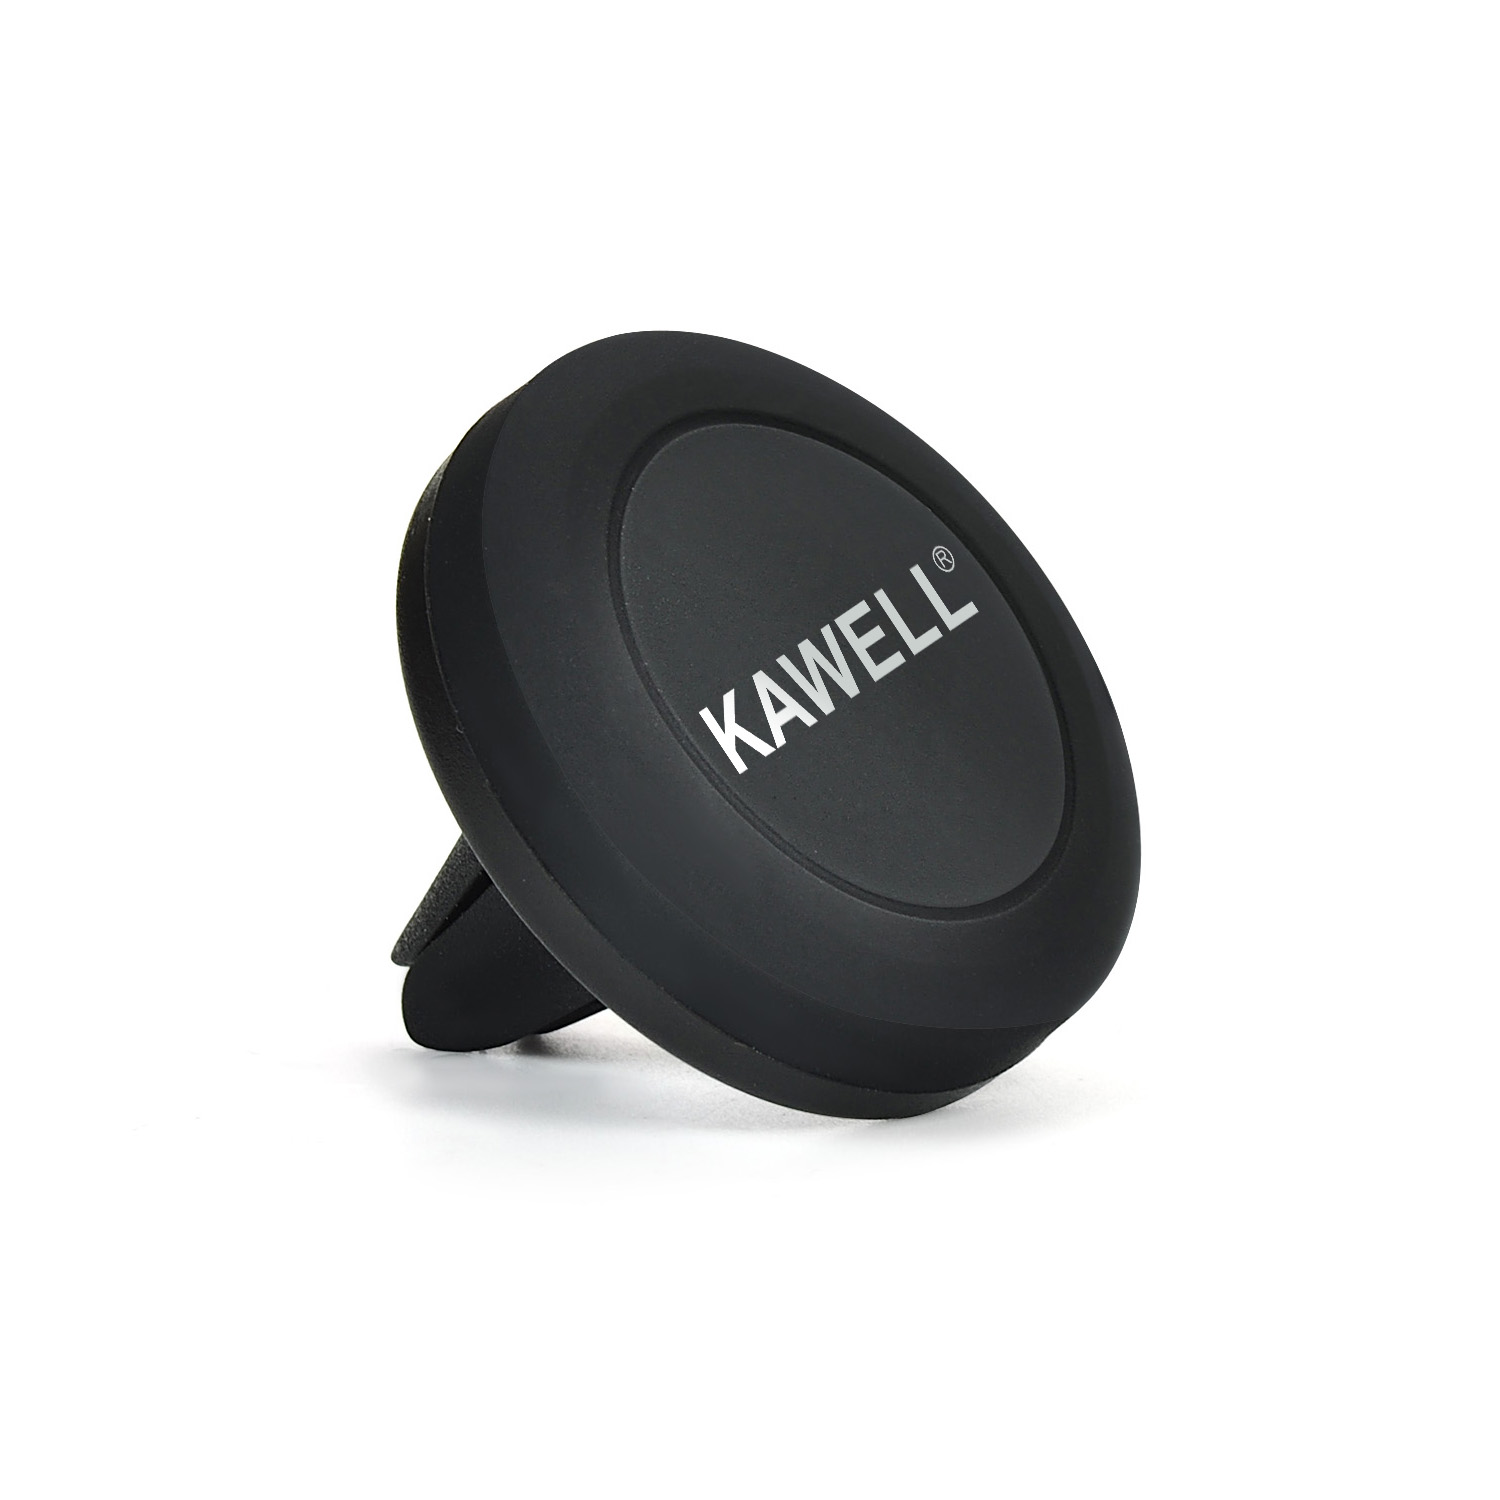 KAWELL Universal Magnetic Phone Car Mount, Air Vent Cell Phone Holder for iPhone, Samsung, Nexus other Smart Phone and GPS Etc. (Small Black)